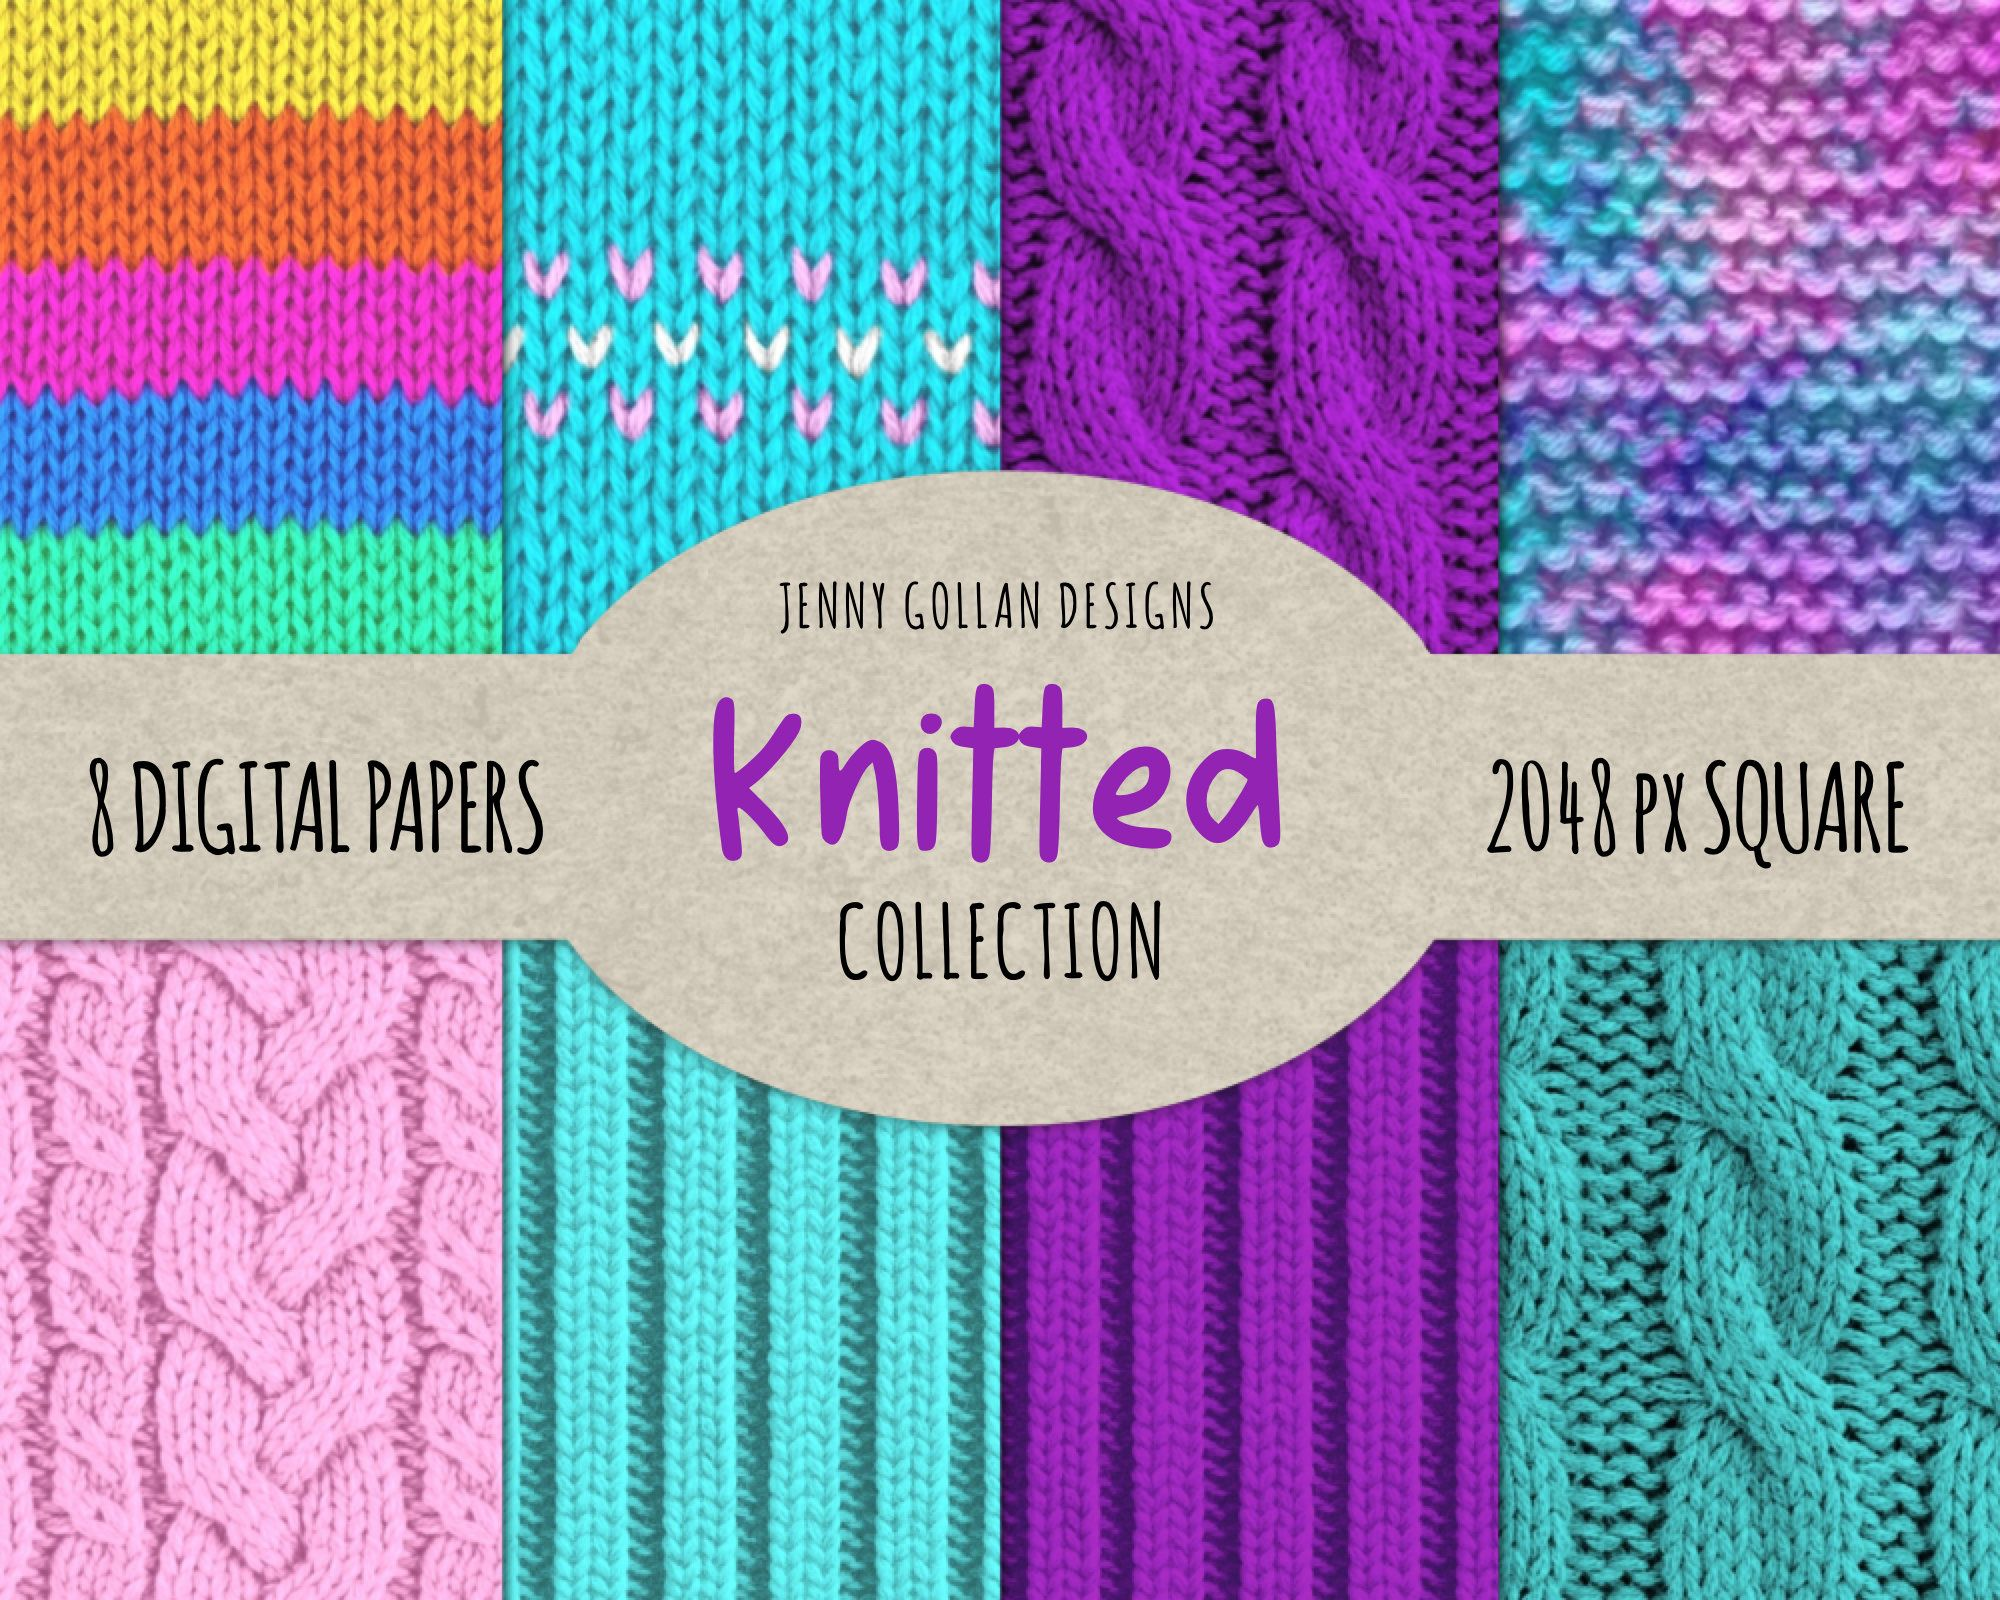 Knitted Digital Paper In 8 Vibrant Patterns for Digital